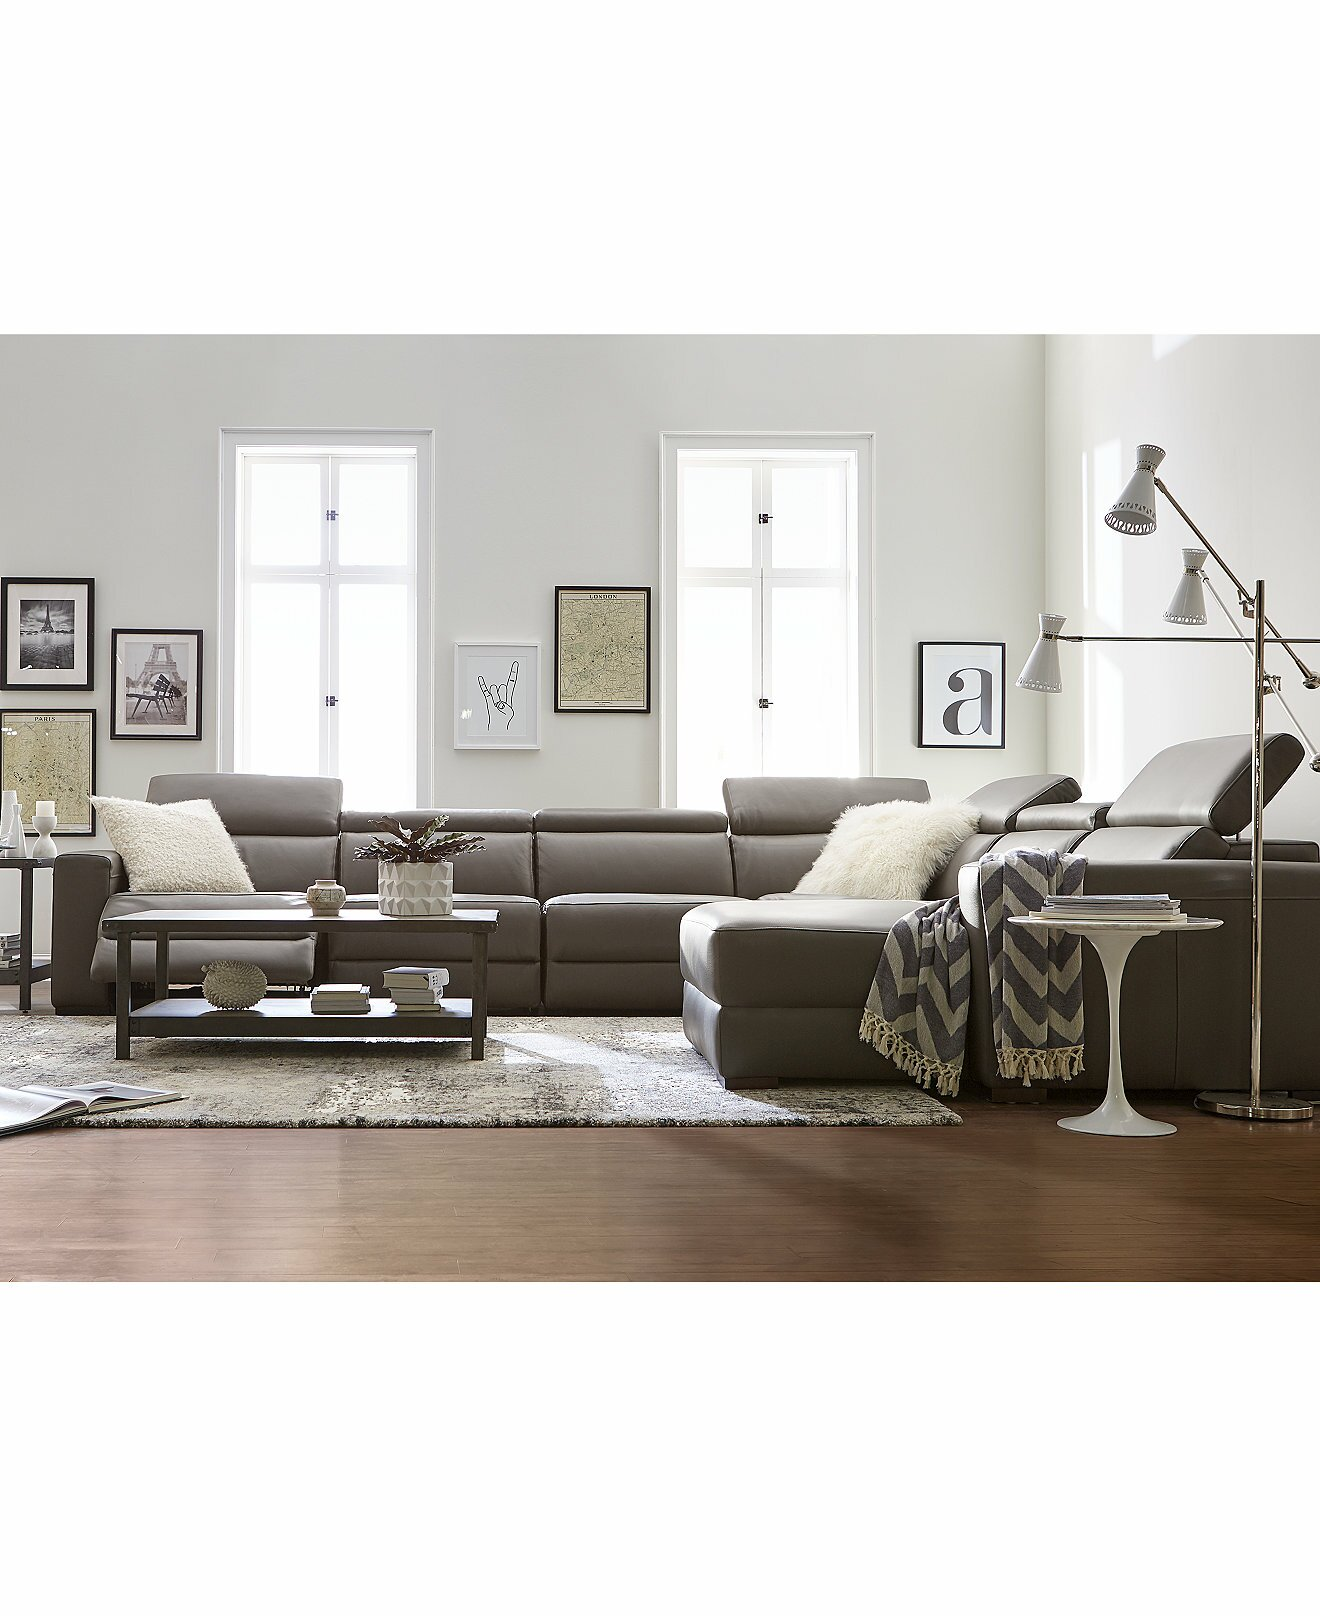 sofa klein best cr laine klein leather sofa with sofa klein hush with sofa klein affordable. Black Bedroom Furniture Sets. Home Design Ideas